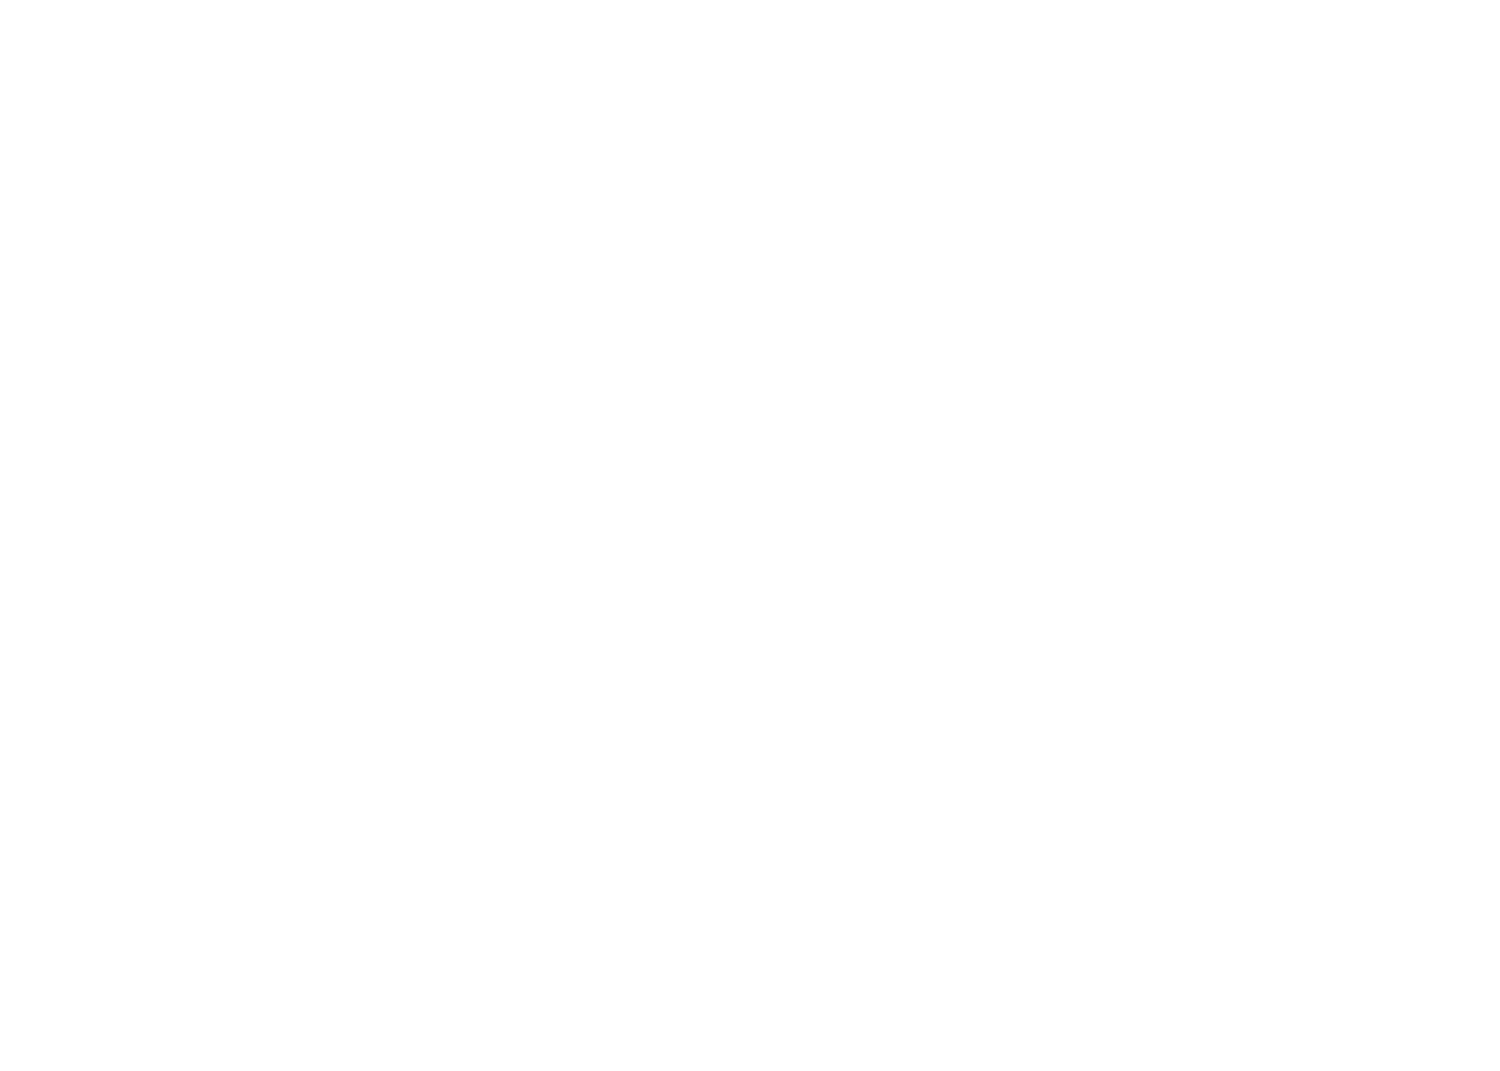 Challenge Charter Middle School | Far Rockaway, NY